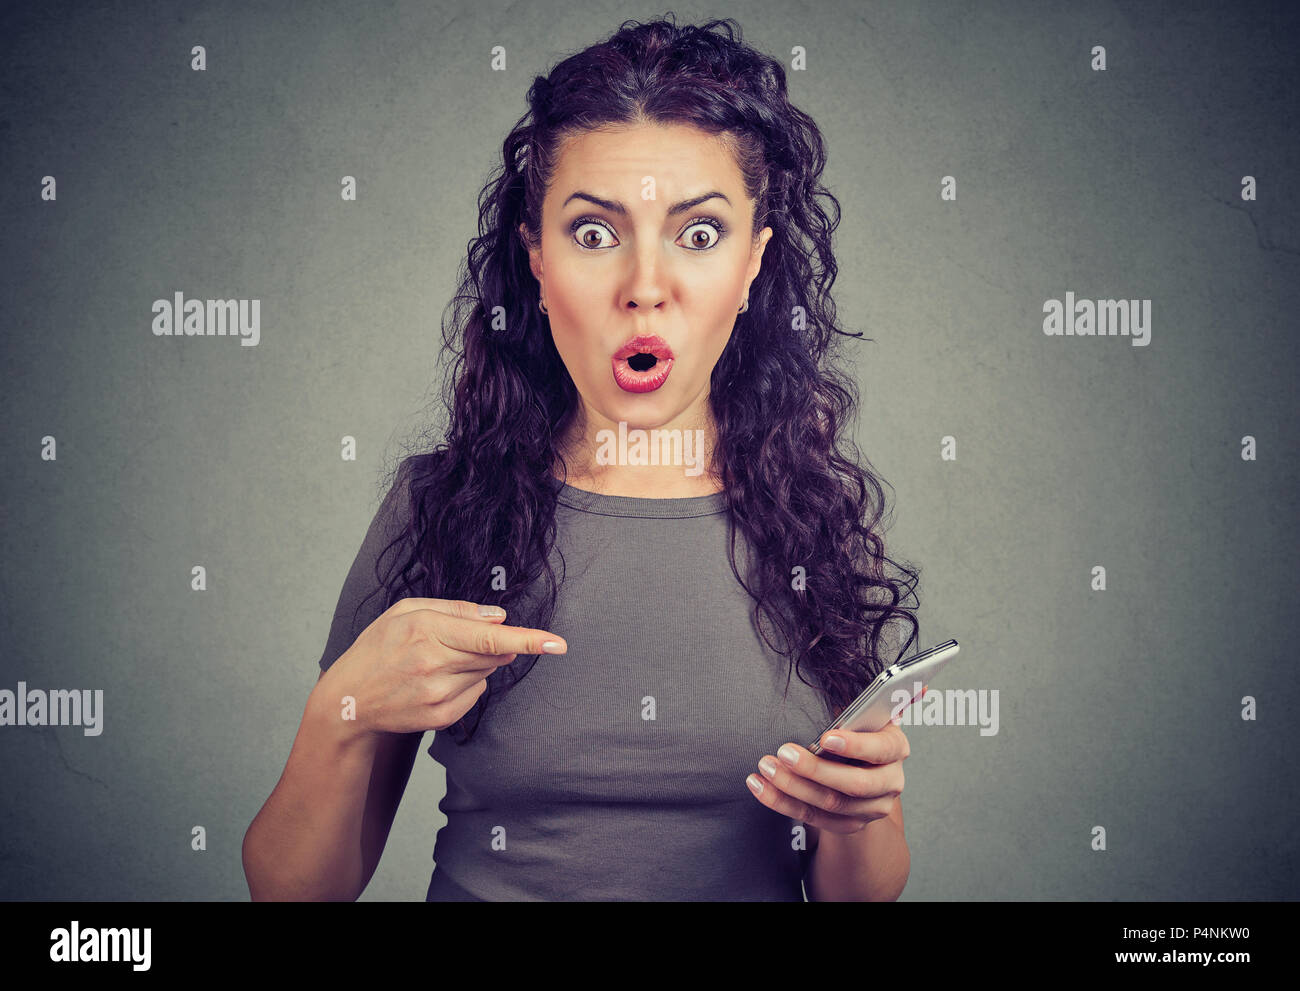 young woman looking with terrified expression at camera pointing at smart phone, after reading shocking news on webpage isolated on gray background. - Stock Image